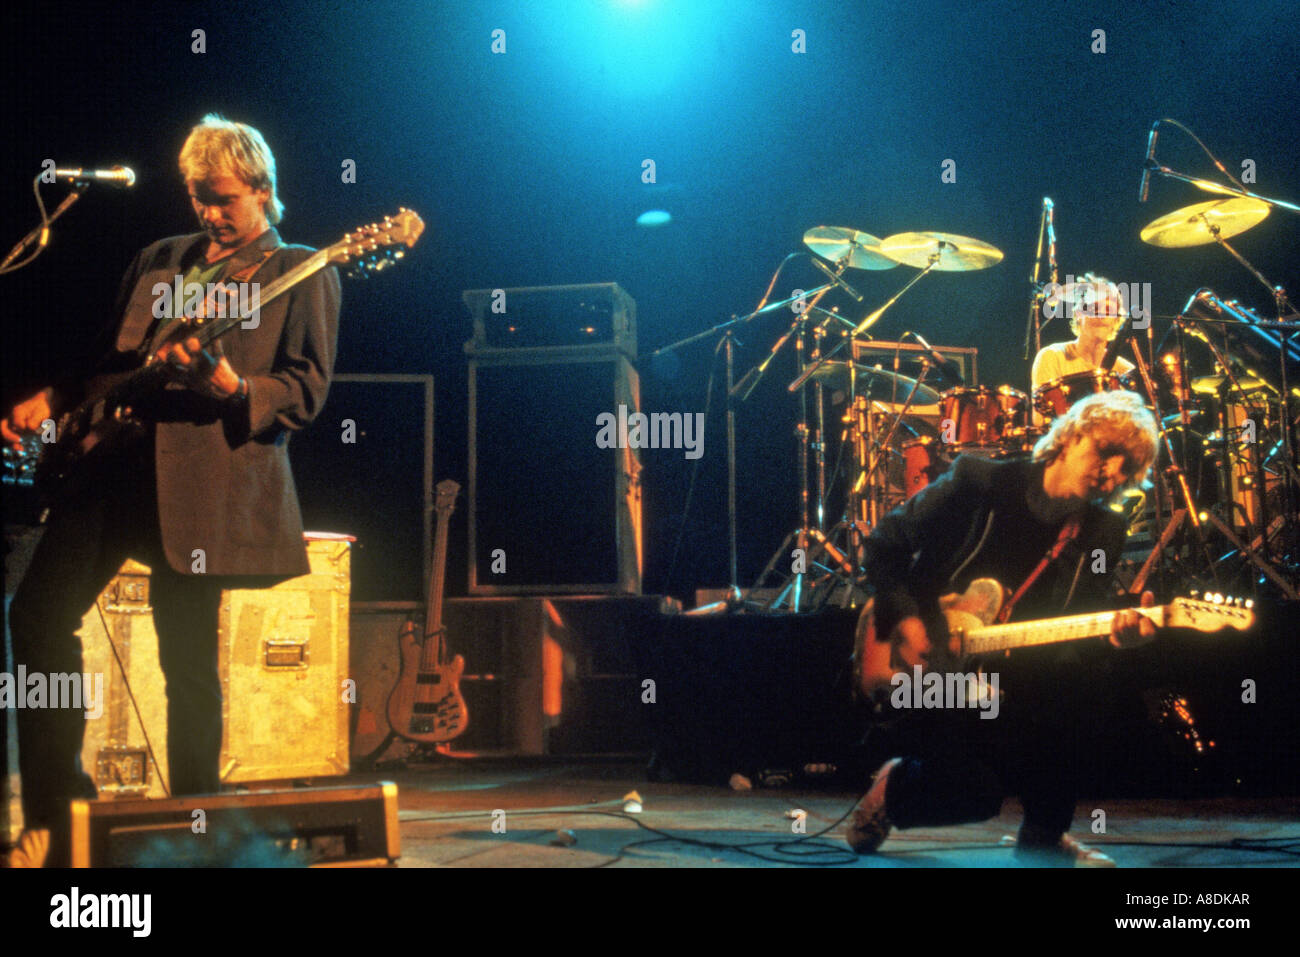 POLICE - UK group with from left Sting, Andy Summers and Stuart Copeland on drums - Stock Image